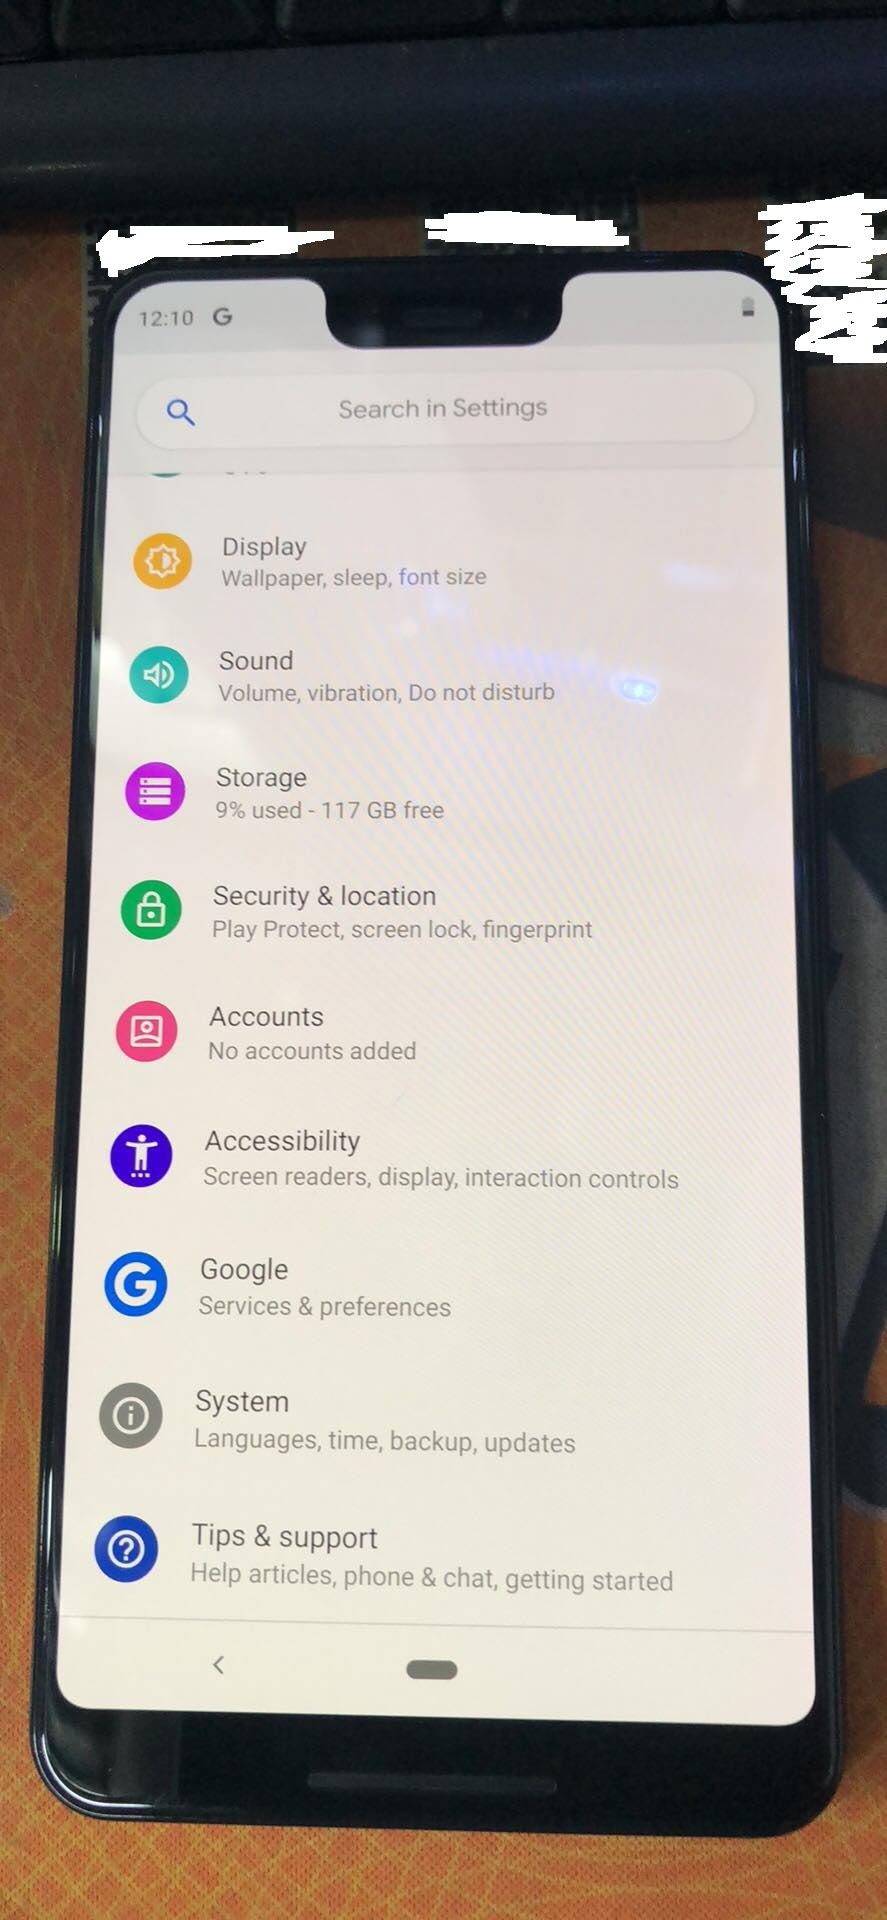 Photos of Google Pixel 3 installed apps, retail box, settings